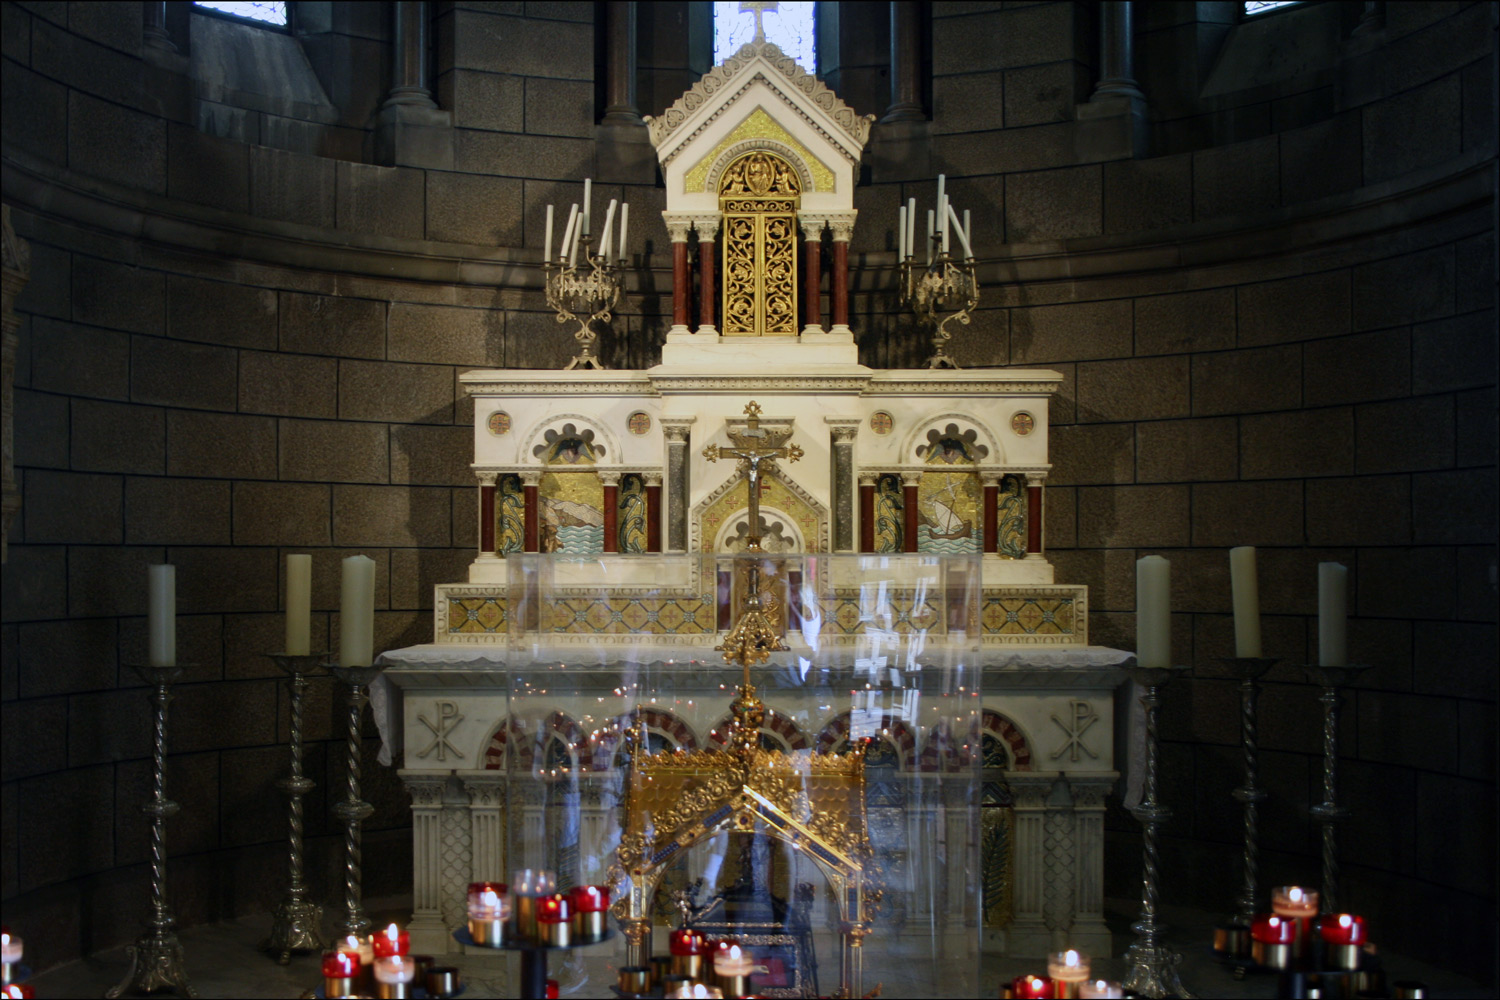 Main Altar in the Monaco Cathedral